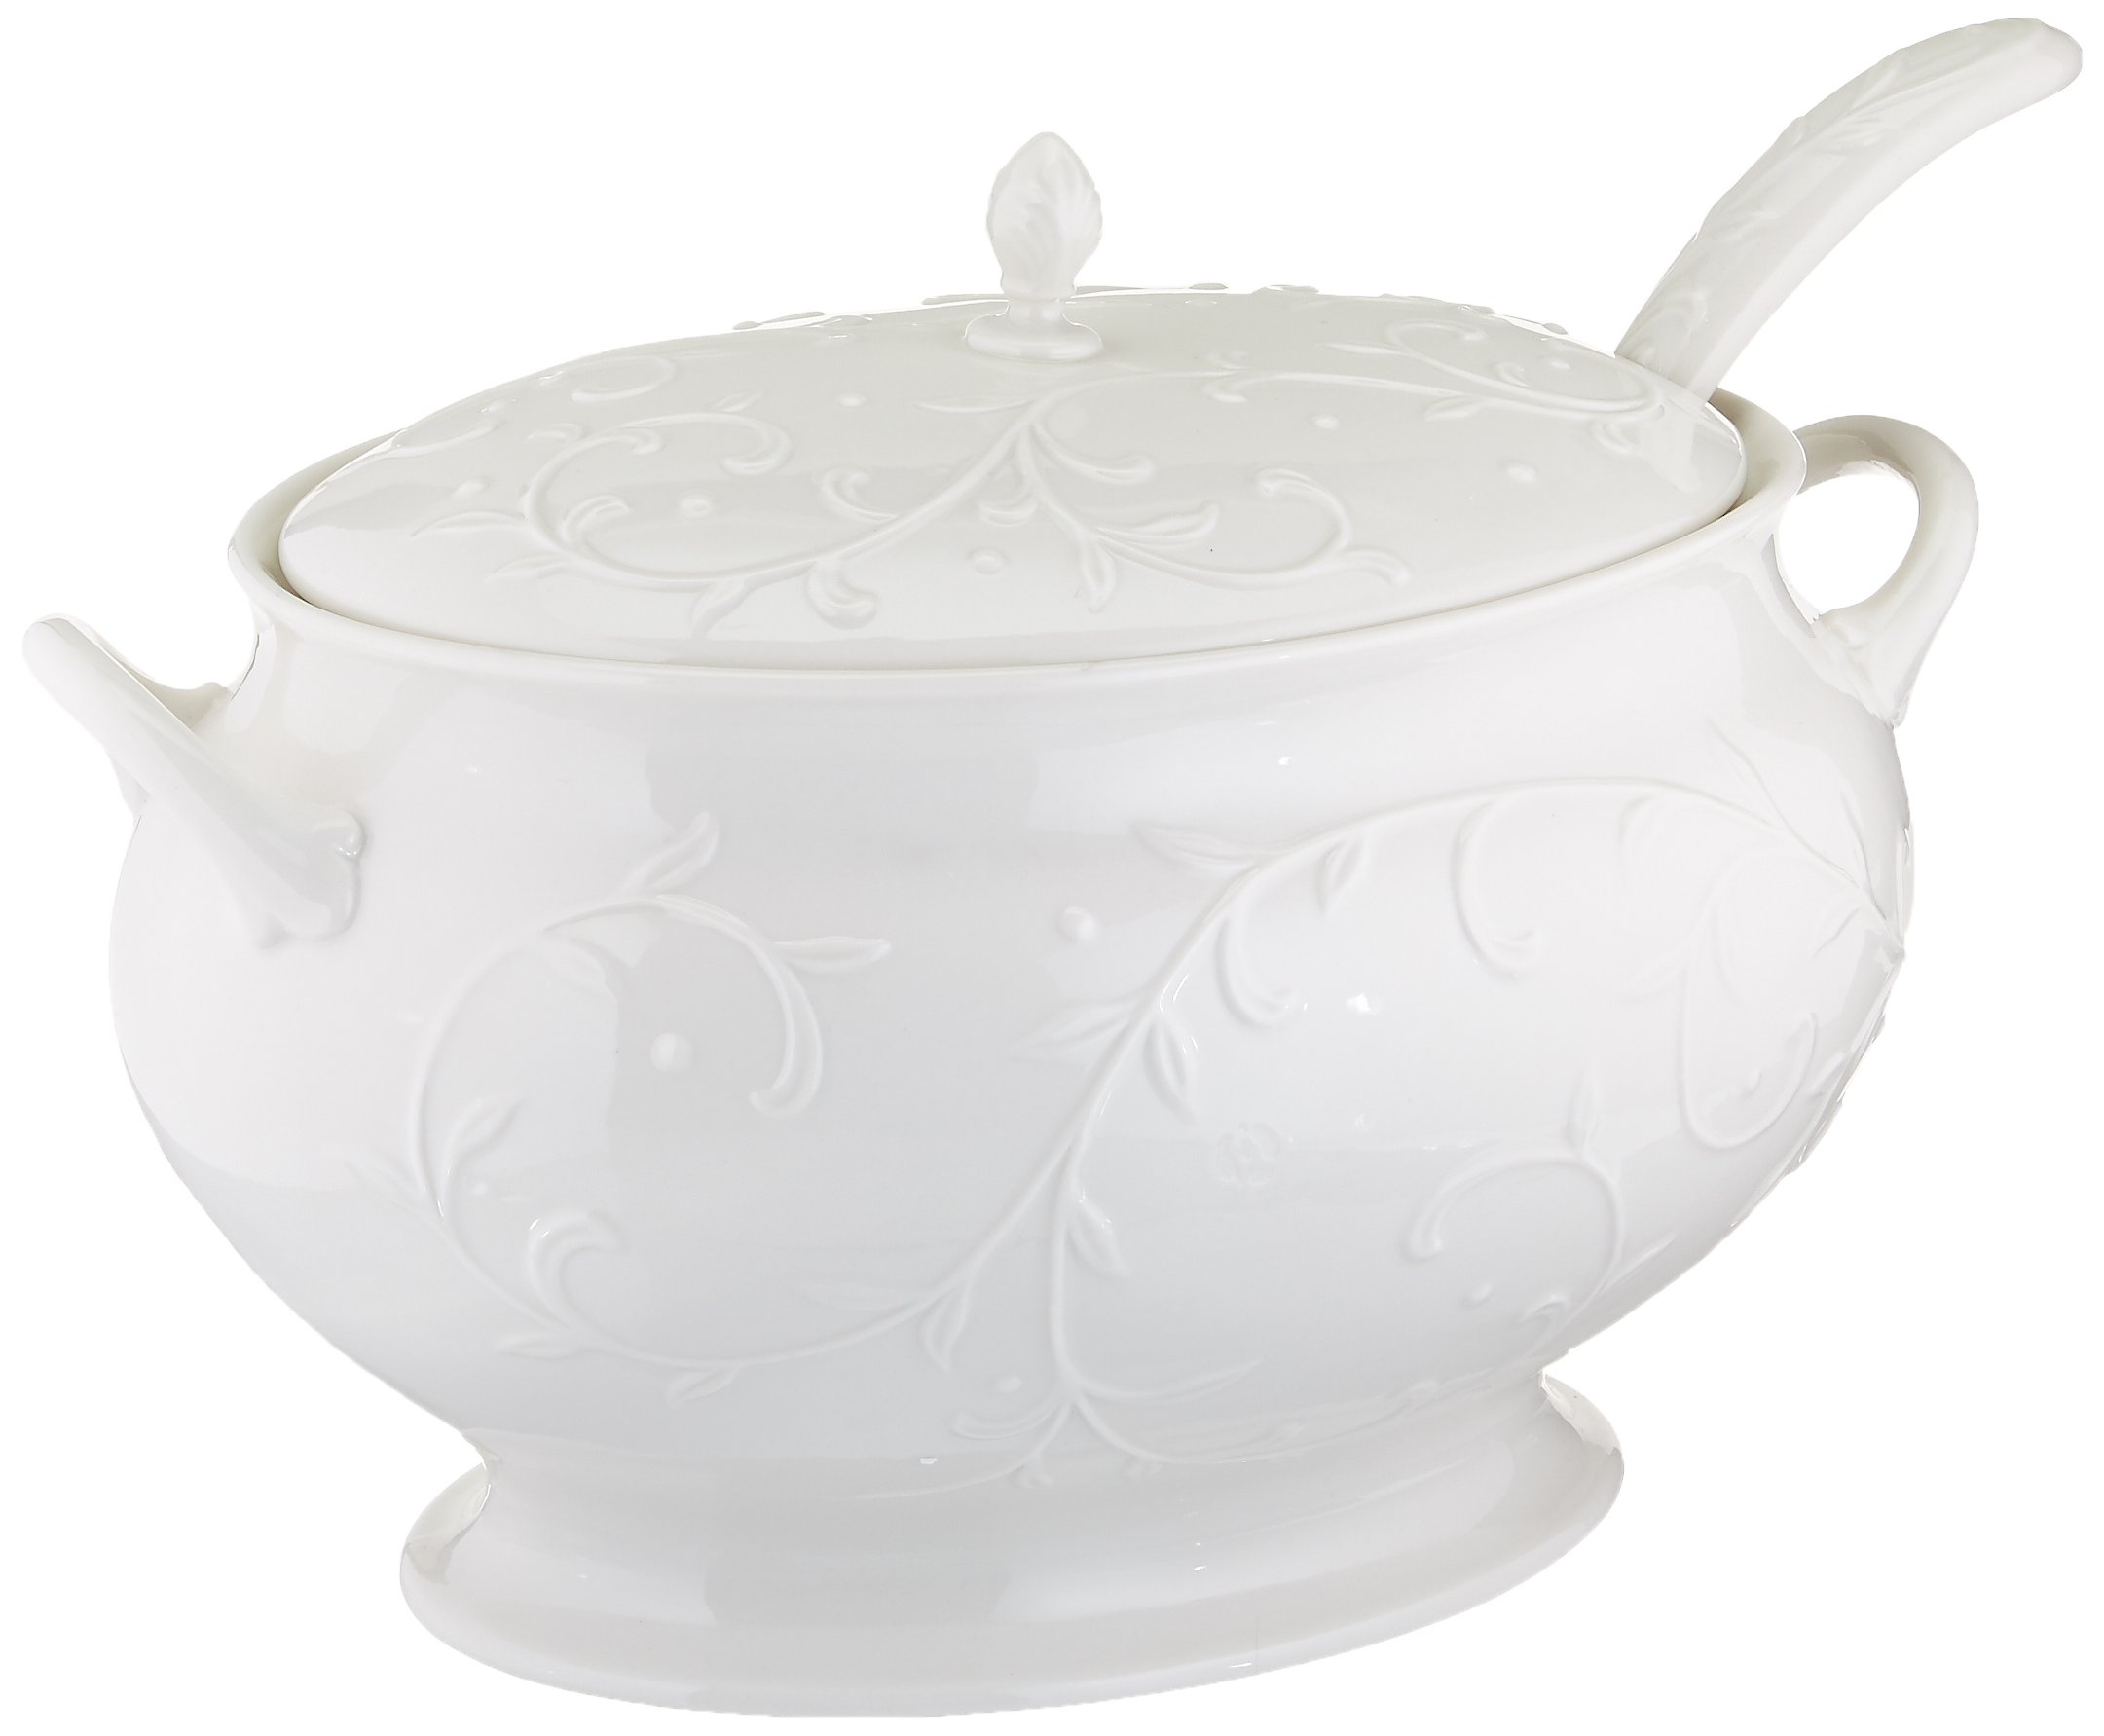 Lenox Opal Innocence Carved Covered Soup Tureen with Ladle, 10-1/4-Inch, White - 830294 by Lenox